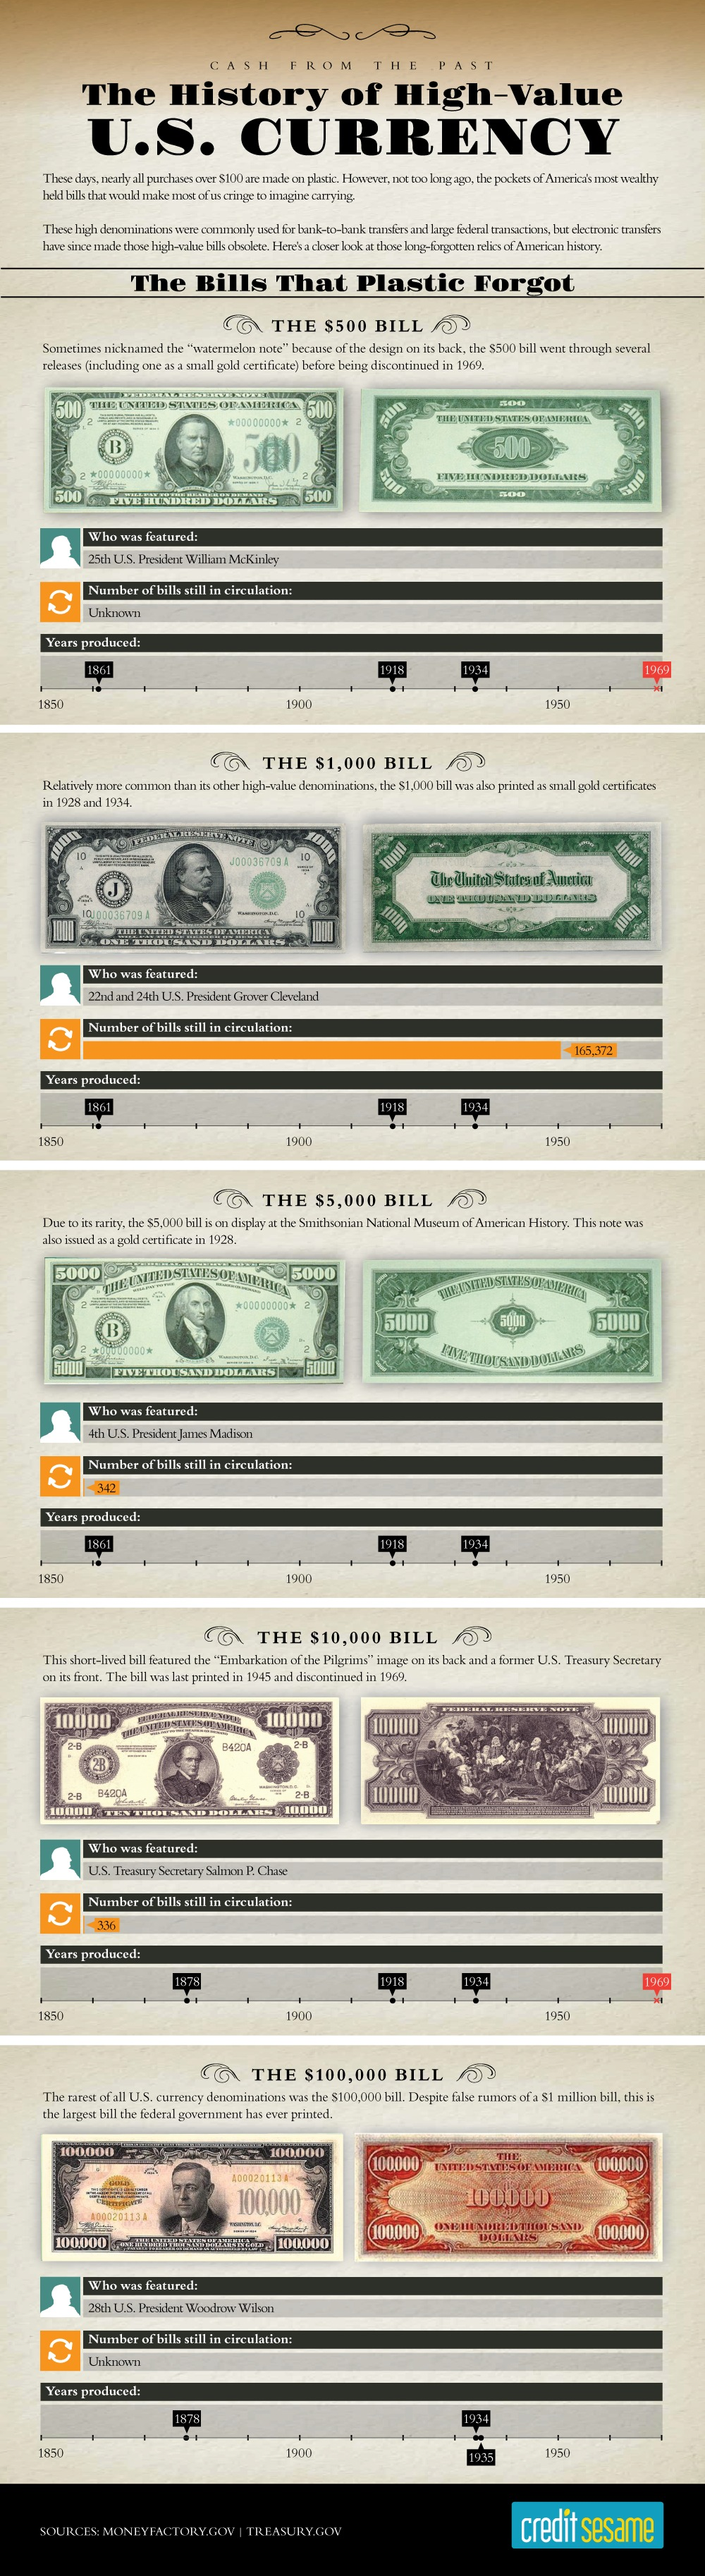 Infographic: The History of High-Value U.S. Currency